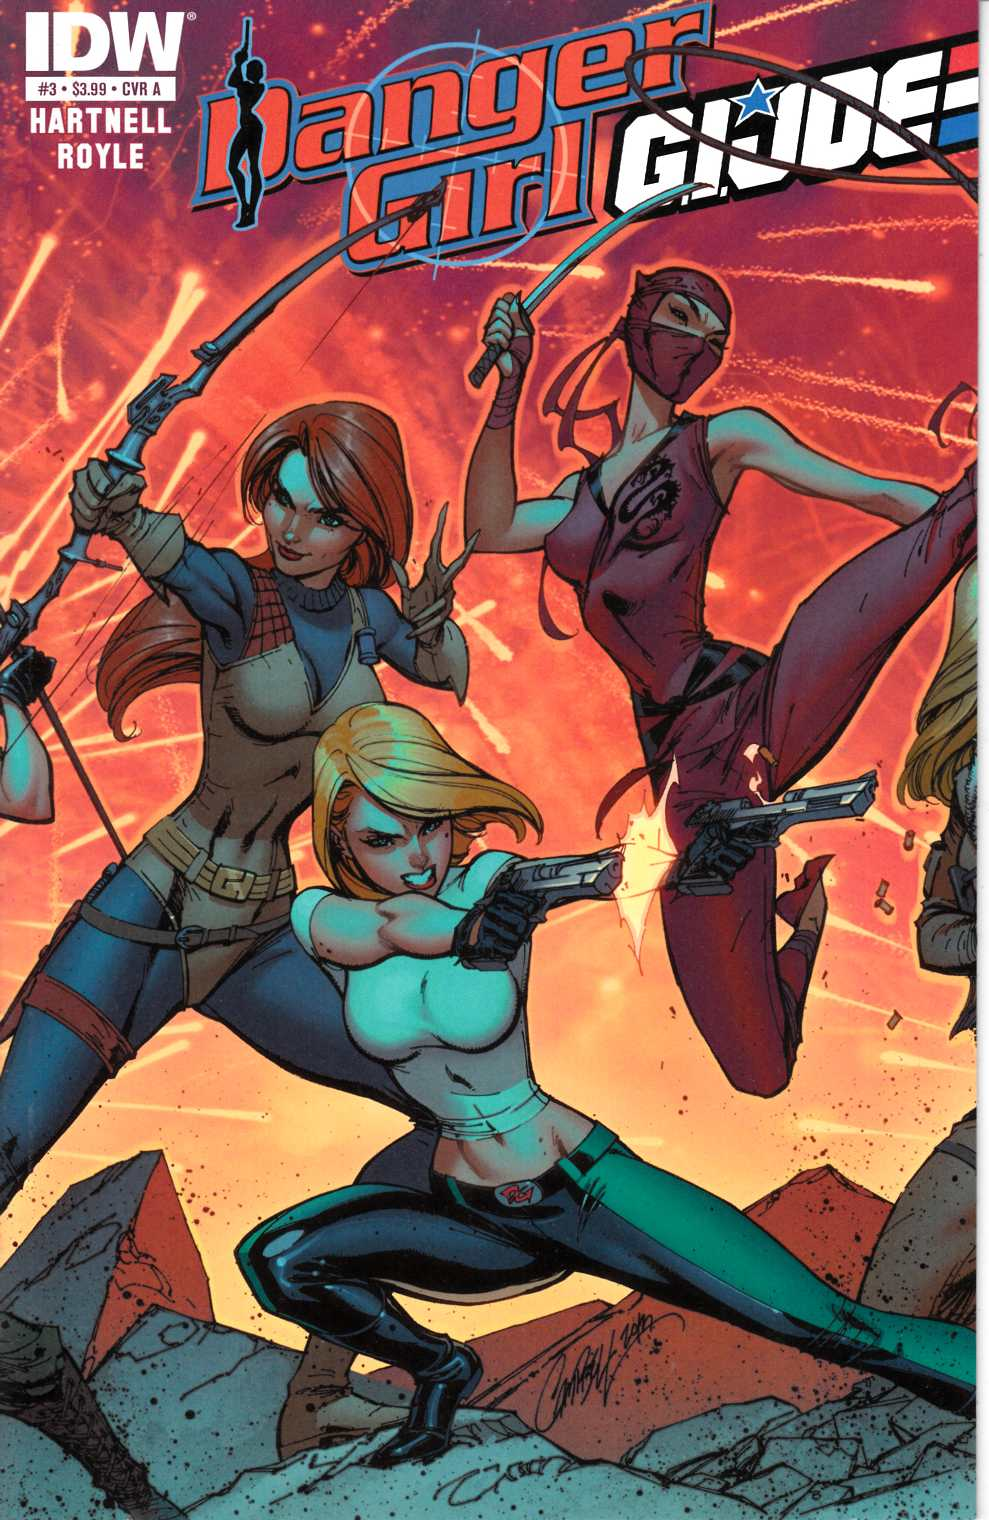 Danger Girl GI Joe #3 Cover A [Comic] THUMBNAIL